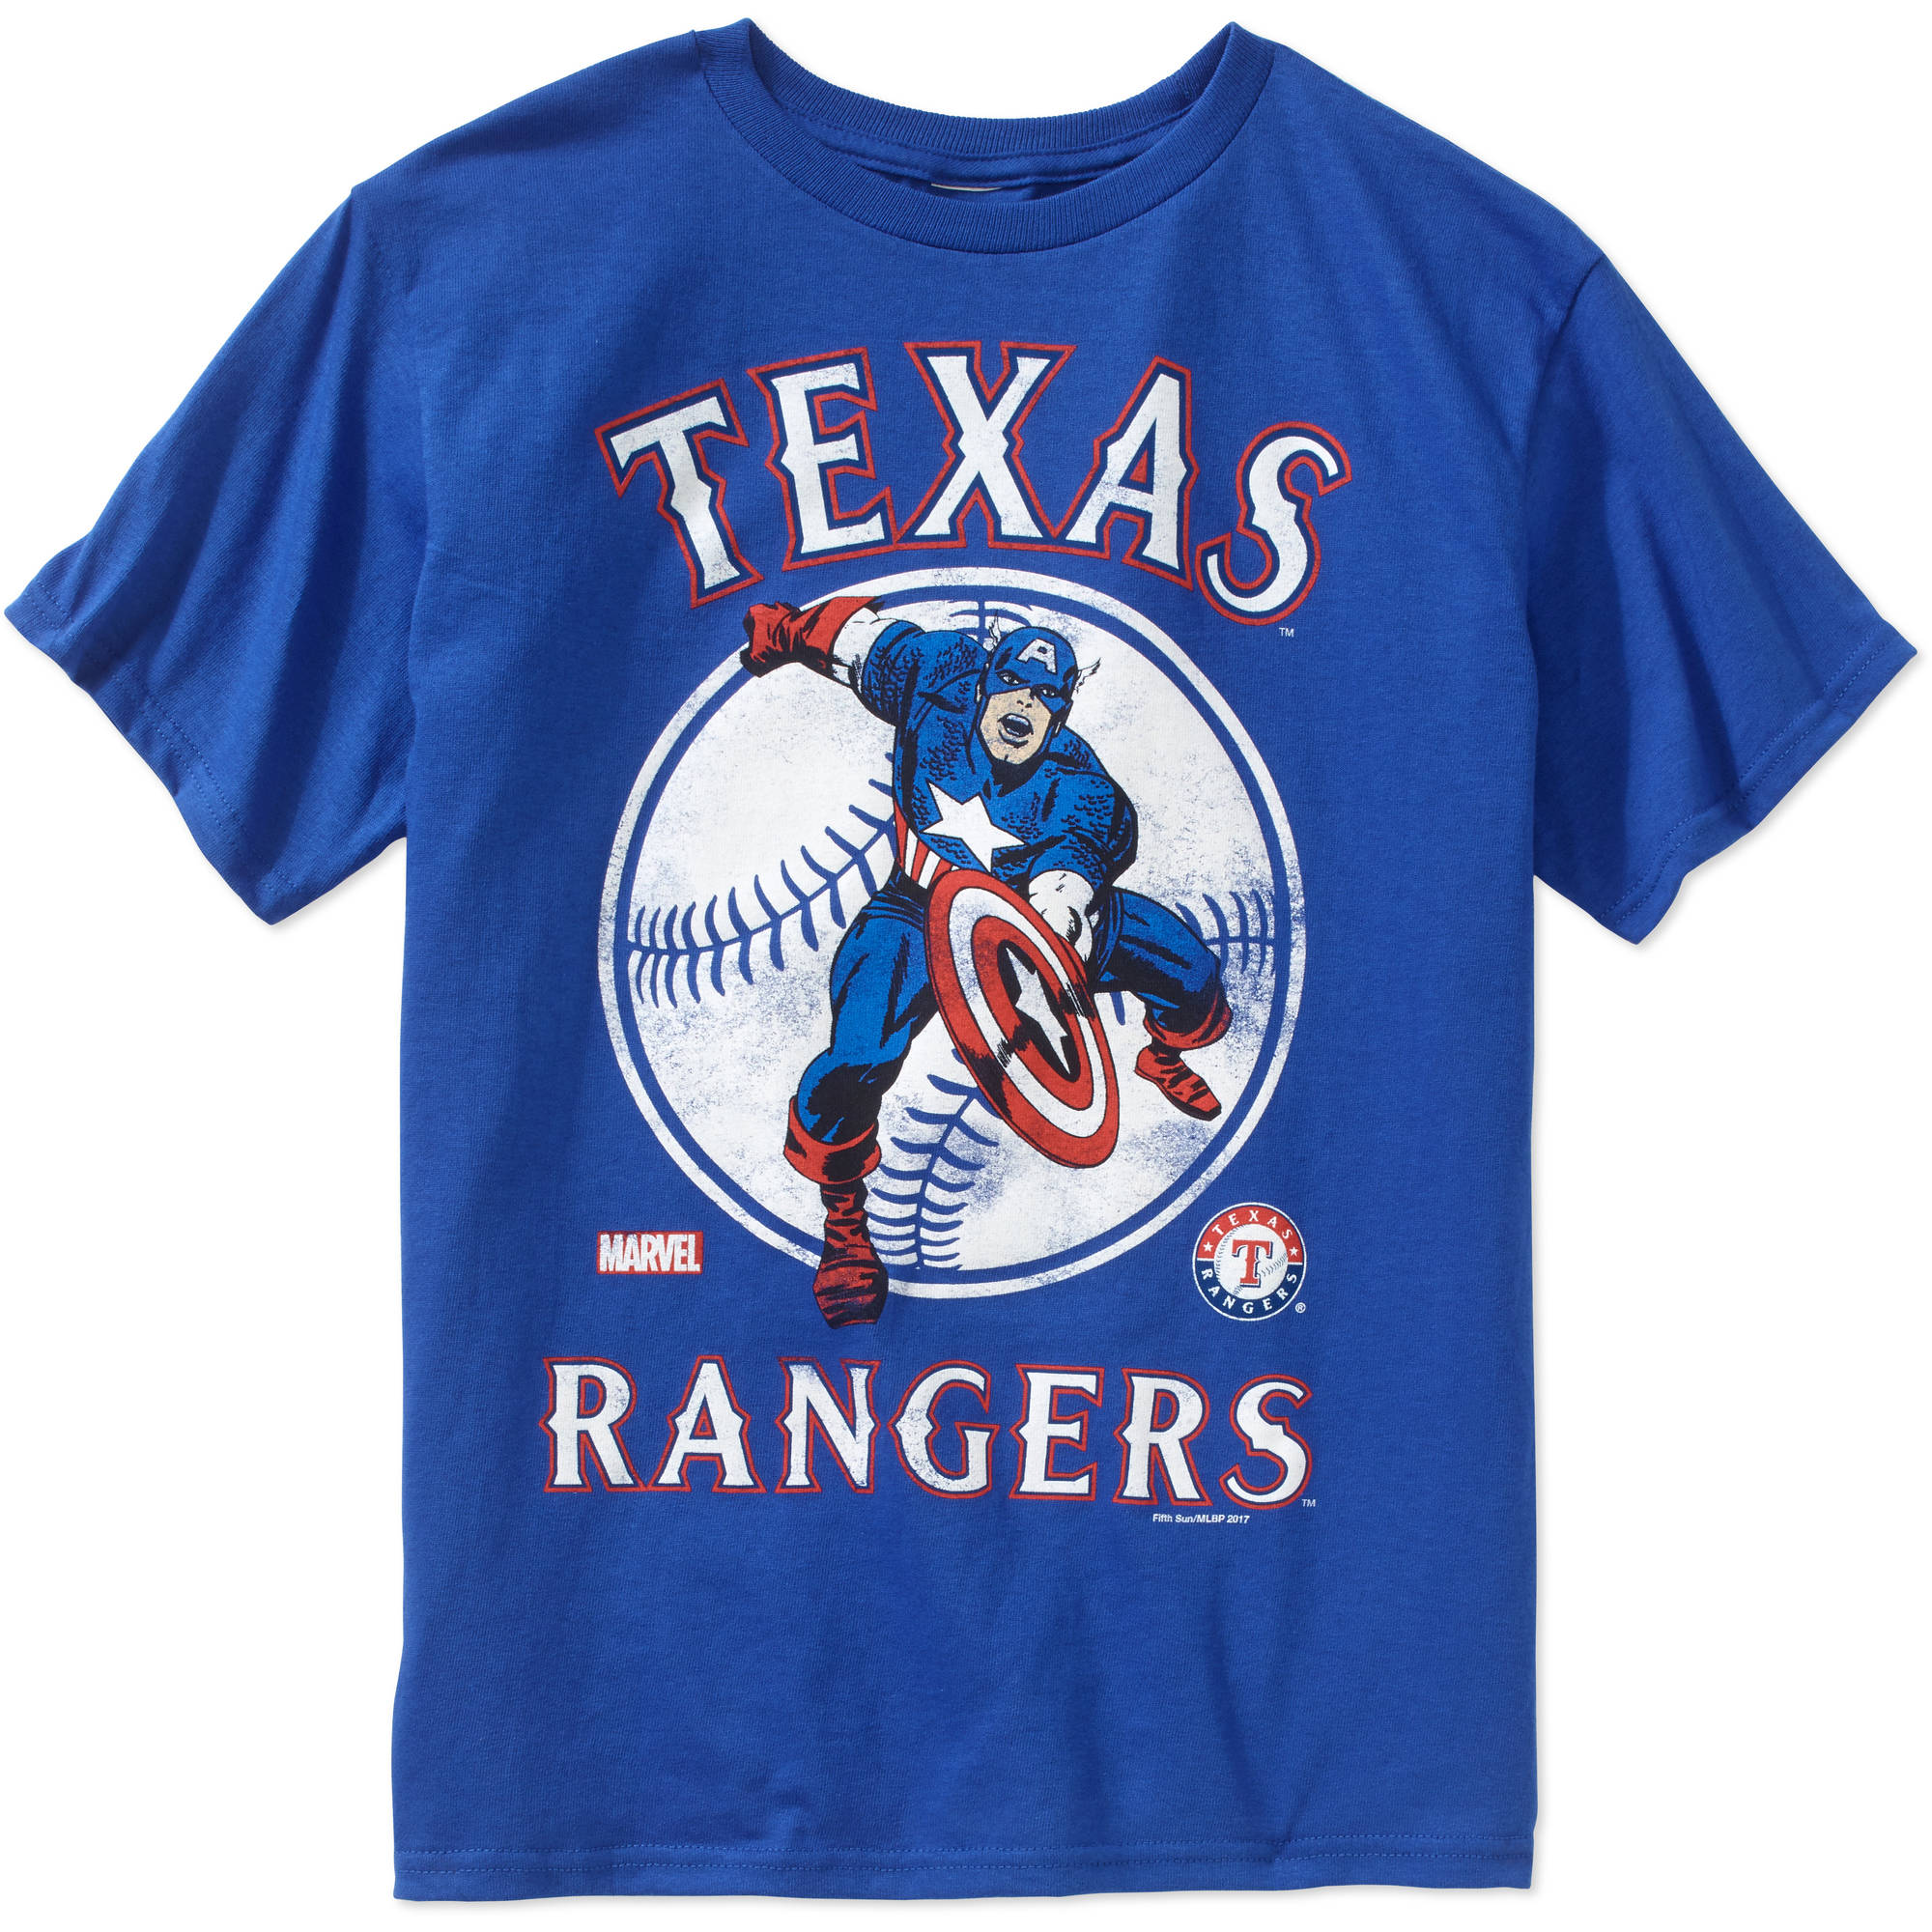 MLB Texas Rangers Boys Marvel Captain America Tee